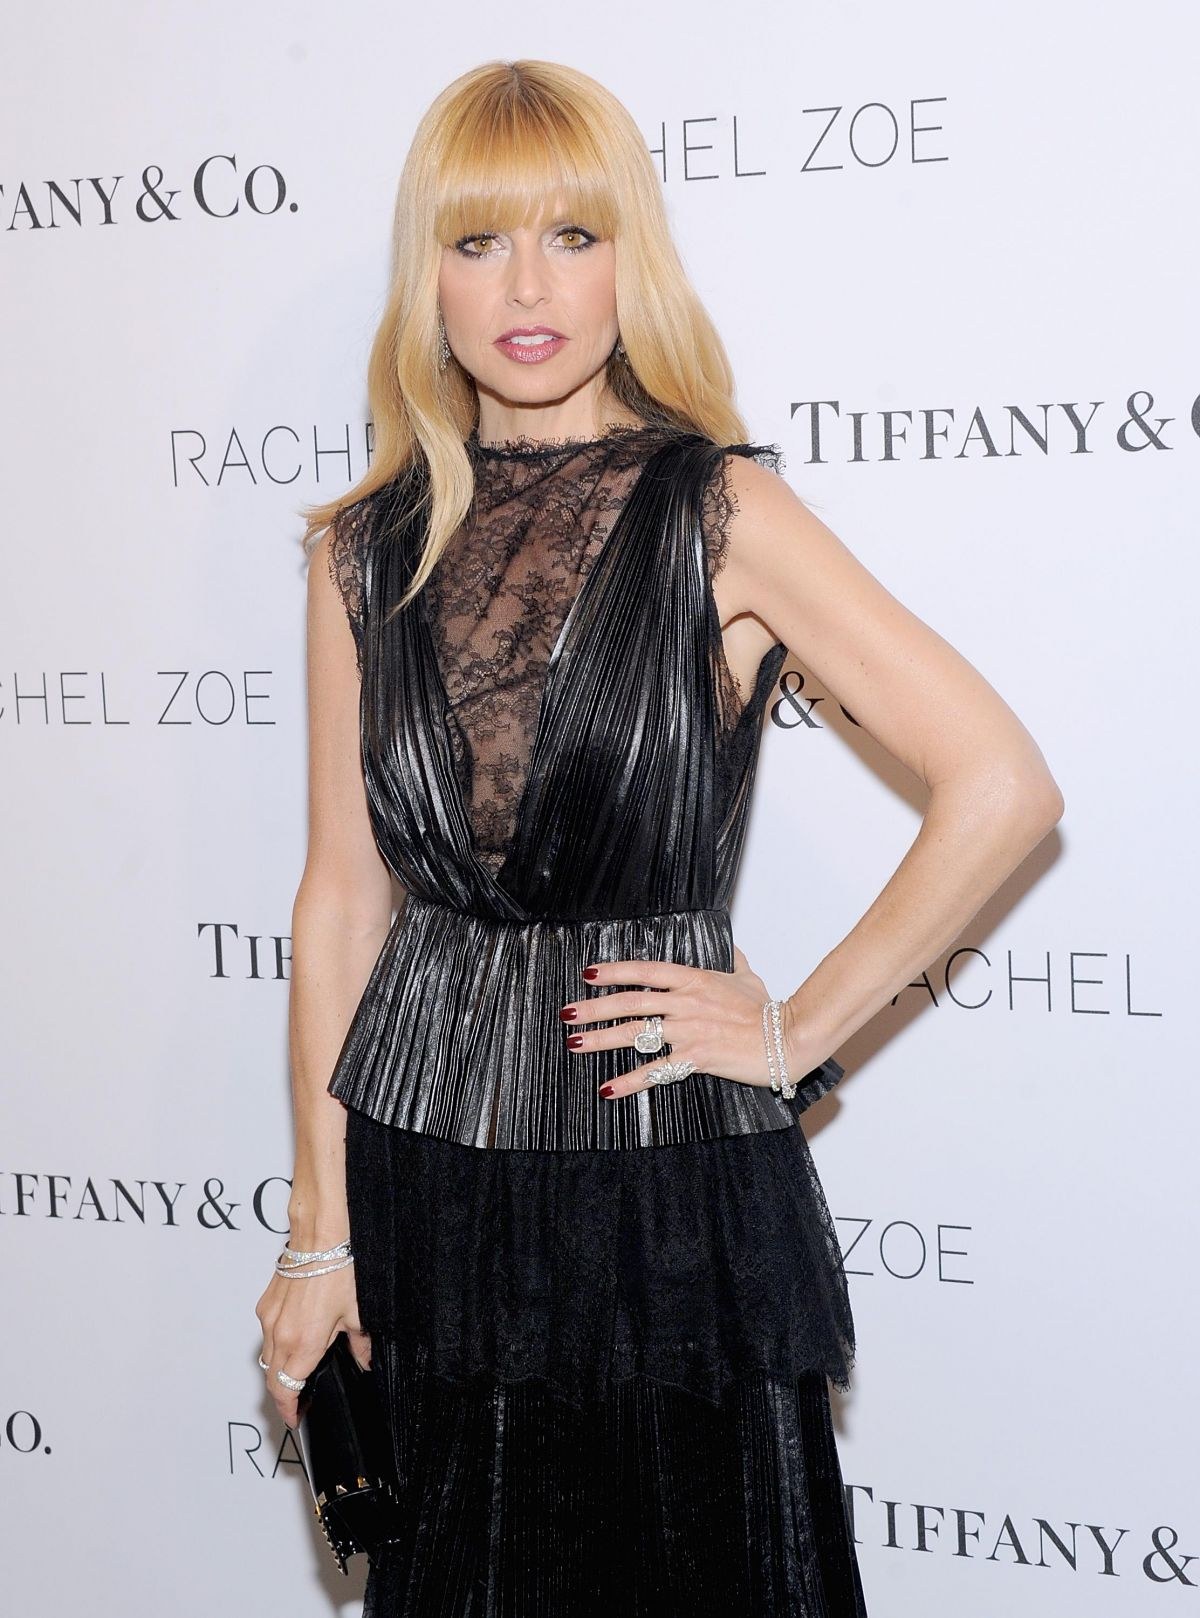 Rachel Zoe s Style DOs and DON Ts Glamour 99